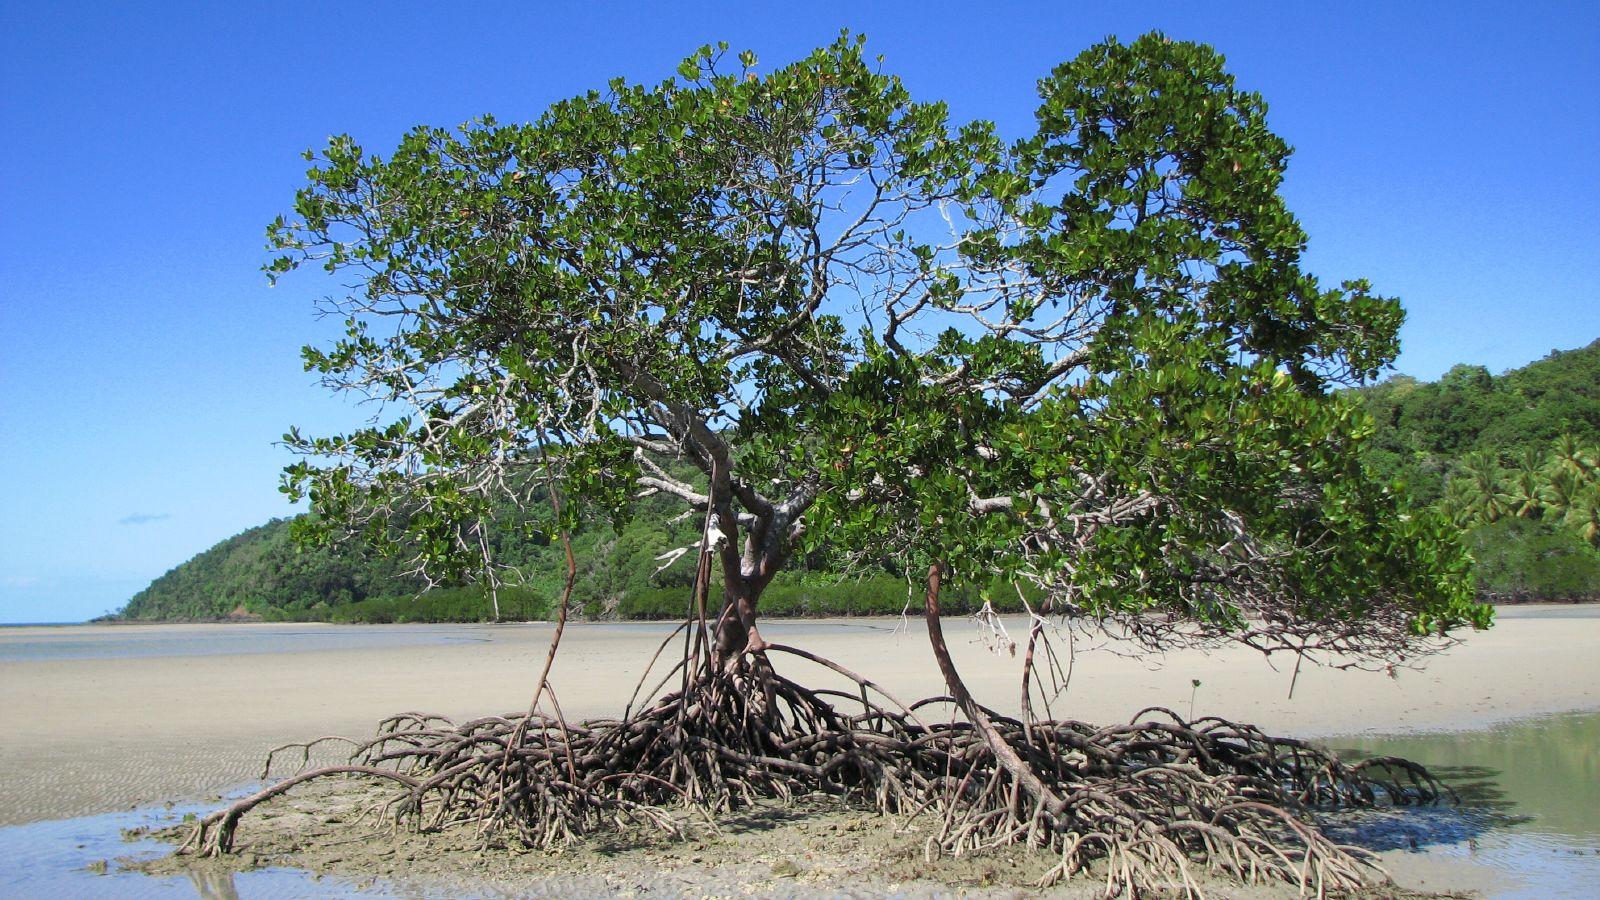 Mangrove_-_Cooktown,_Queensland,_Australia-By-Rob-and-Stephanie-Levy-from-Townsville,-Australia-My-favourite-mangrove,-CC-BY-2.0.jpg